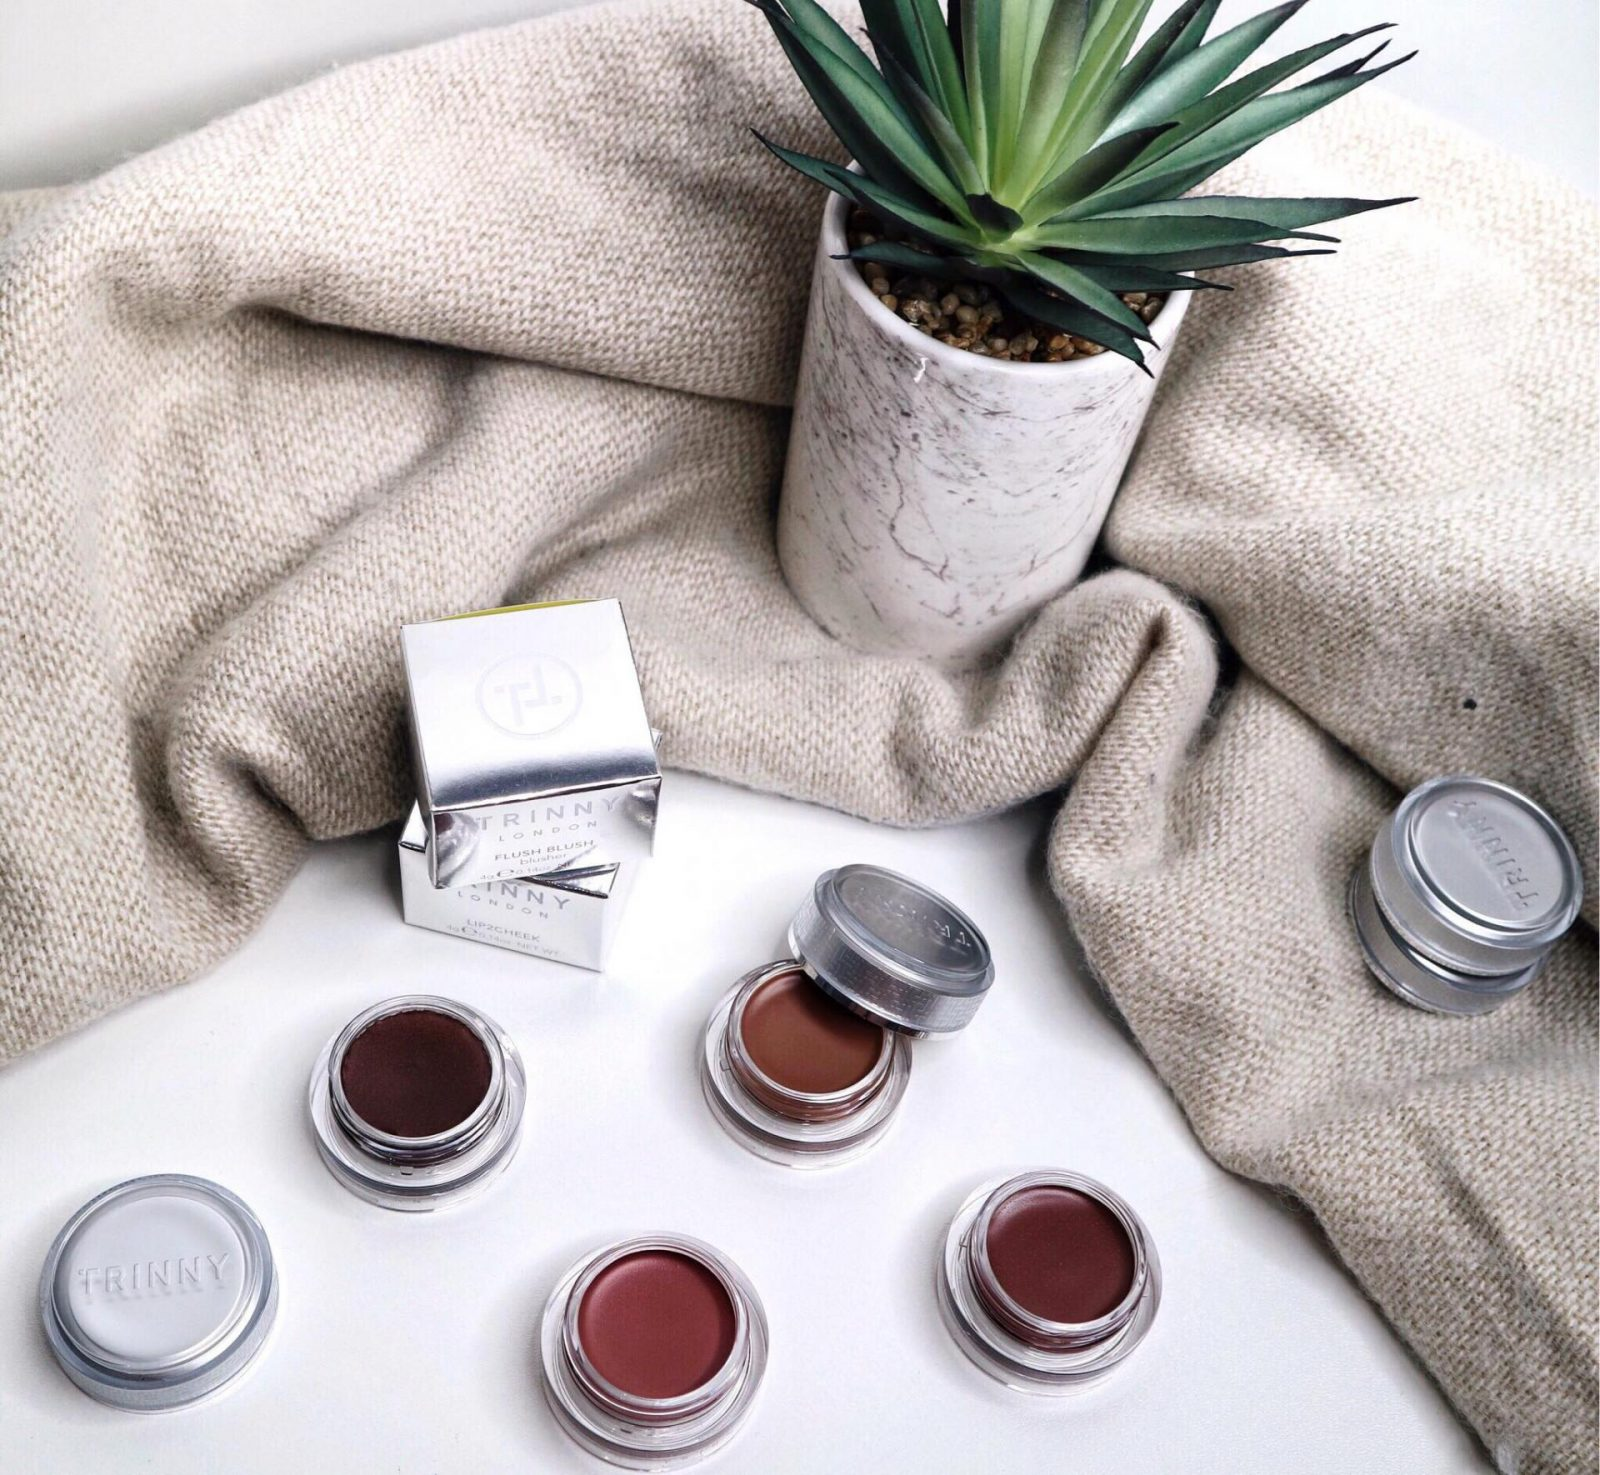 Personalised, Stackable Makeup? | Trinny London